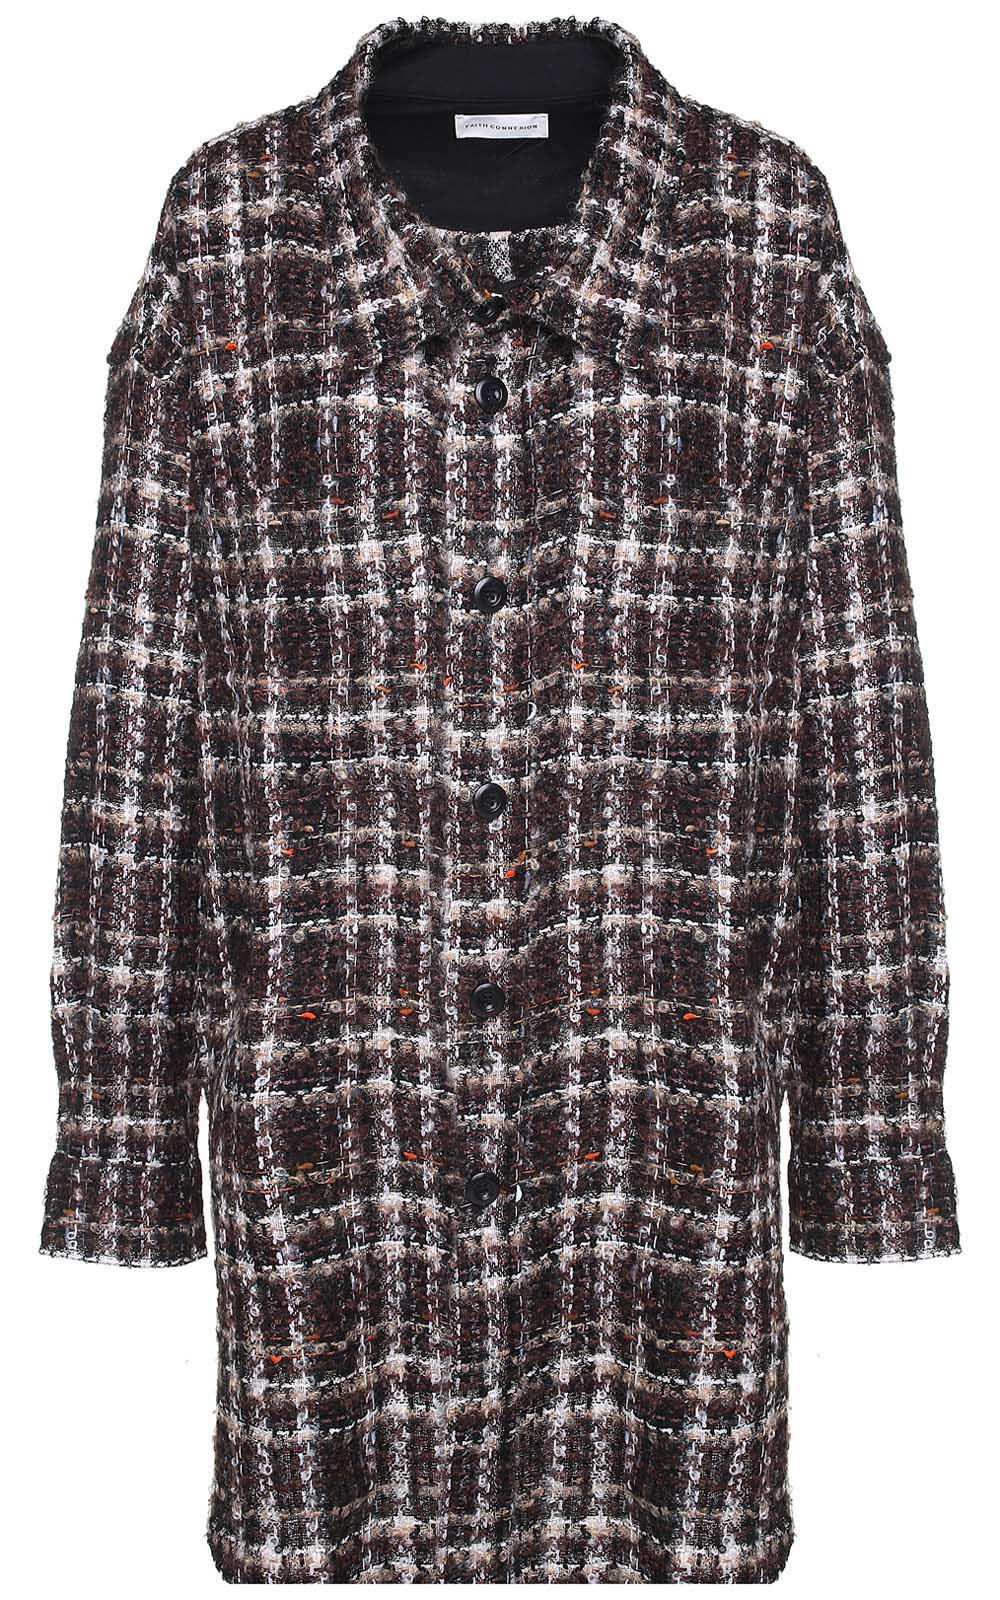 Faith Connexion OVERSIZED TWEED WOOL-BLEND JACKET